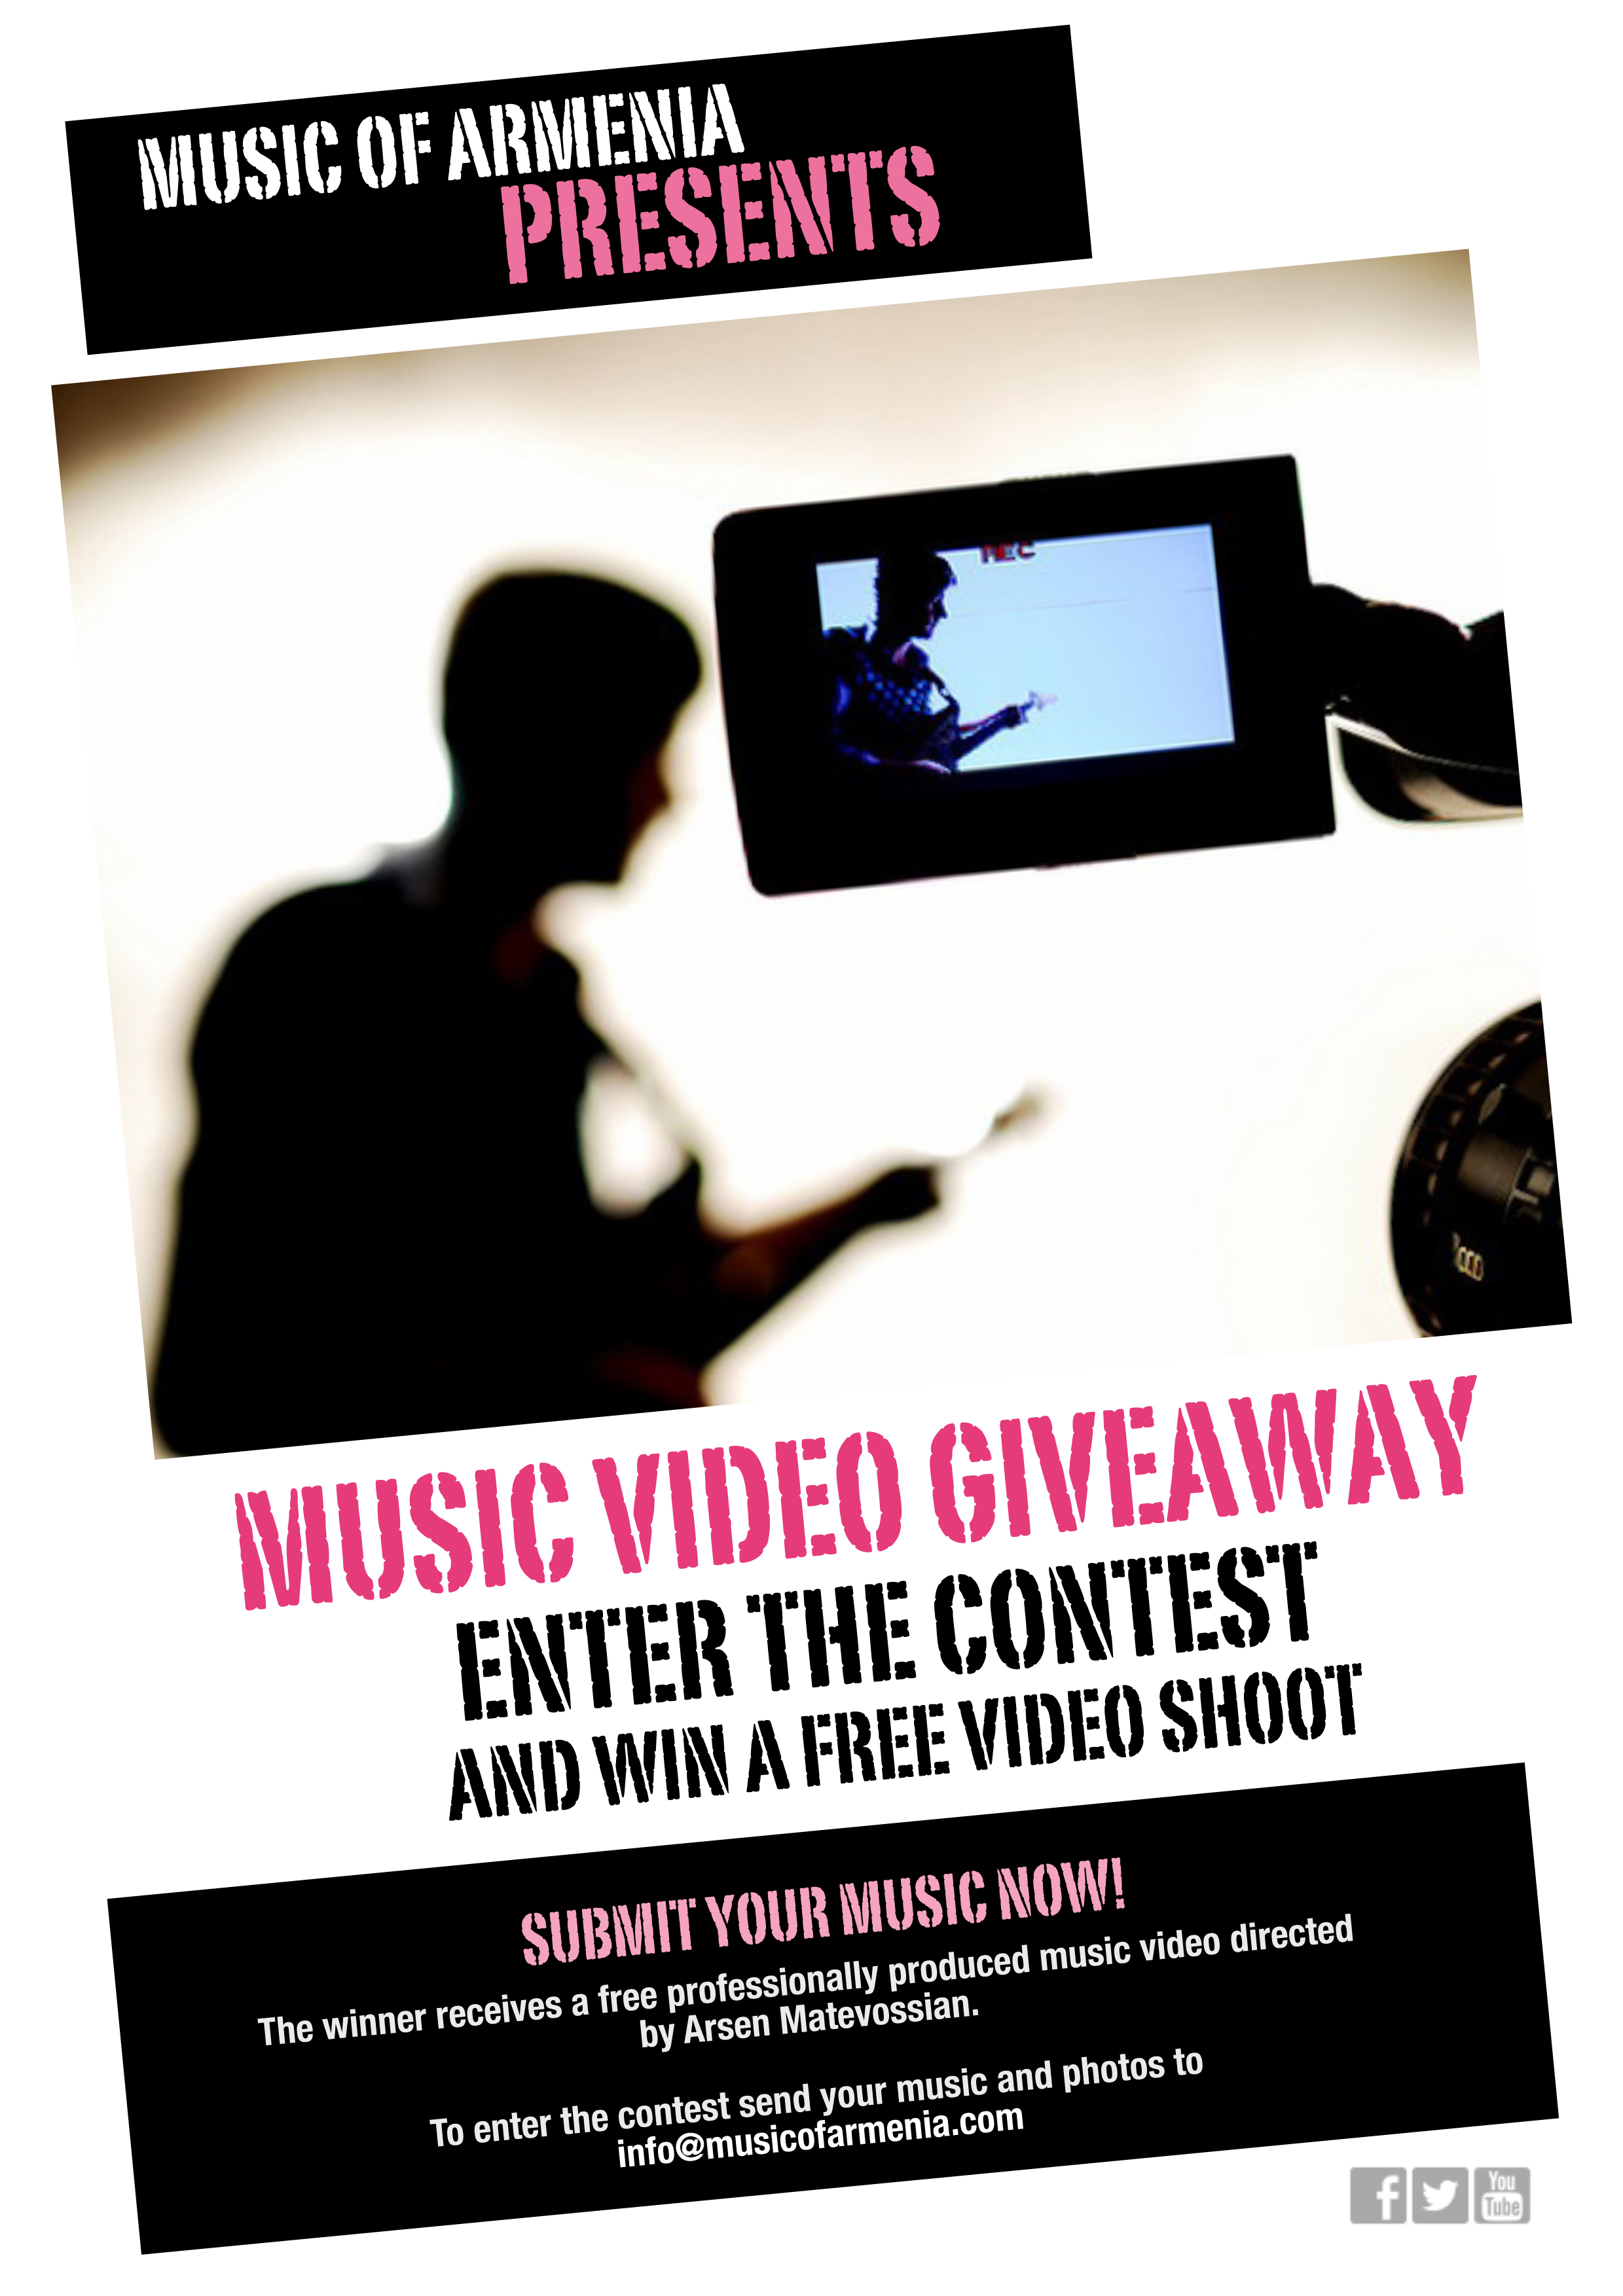 Music Video Giveaway by Music of Armenia